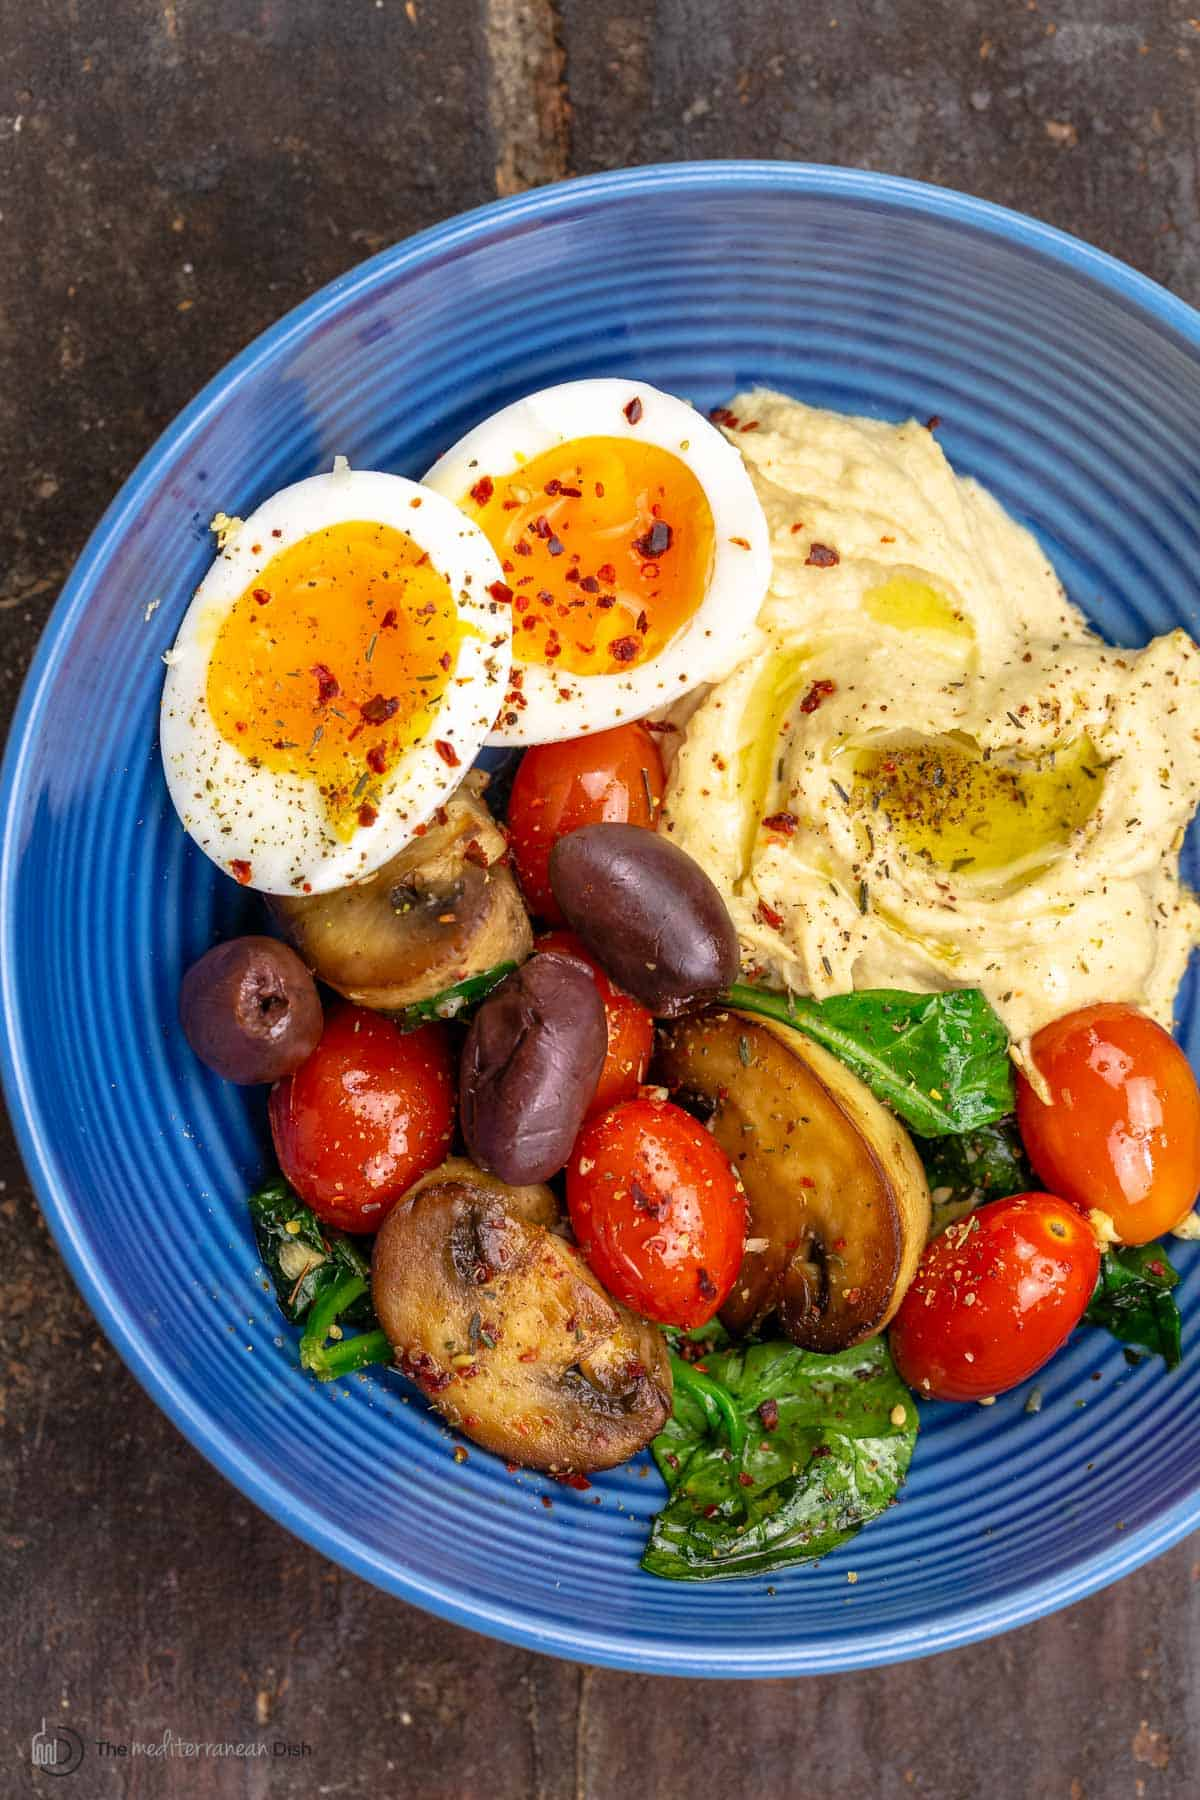 A Mediterranean breakfast bowl with a soft-boiled egg, hummus and sauteed vegetables on a blue plate.